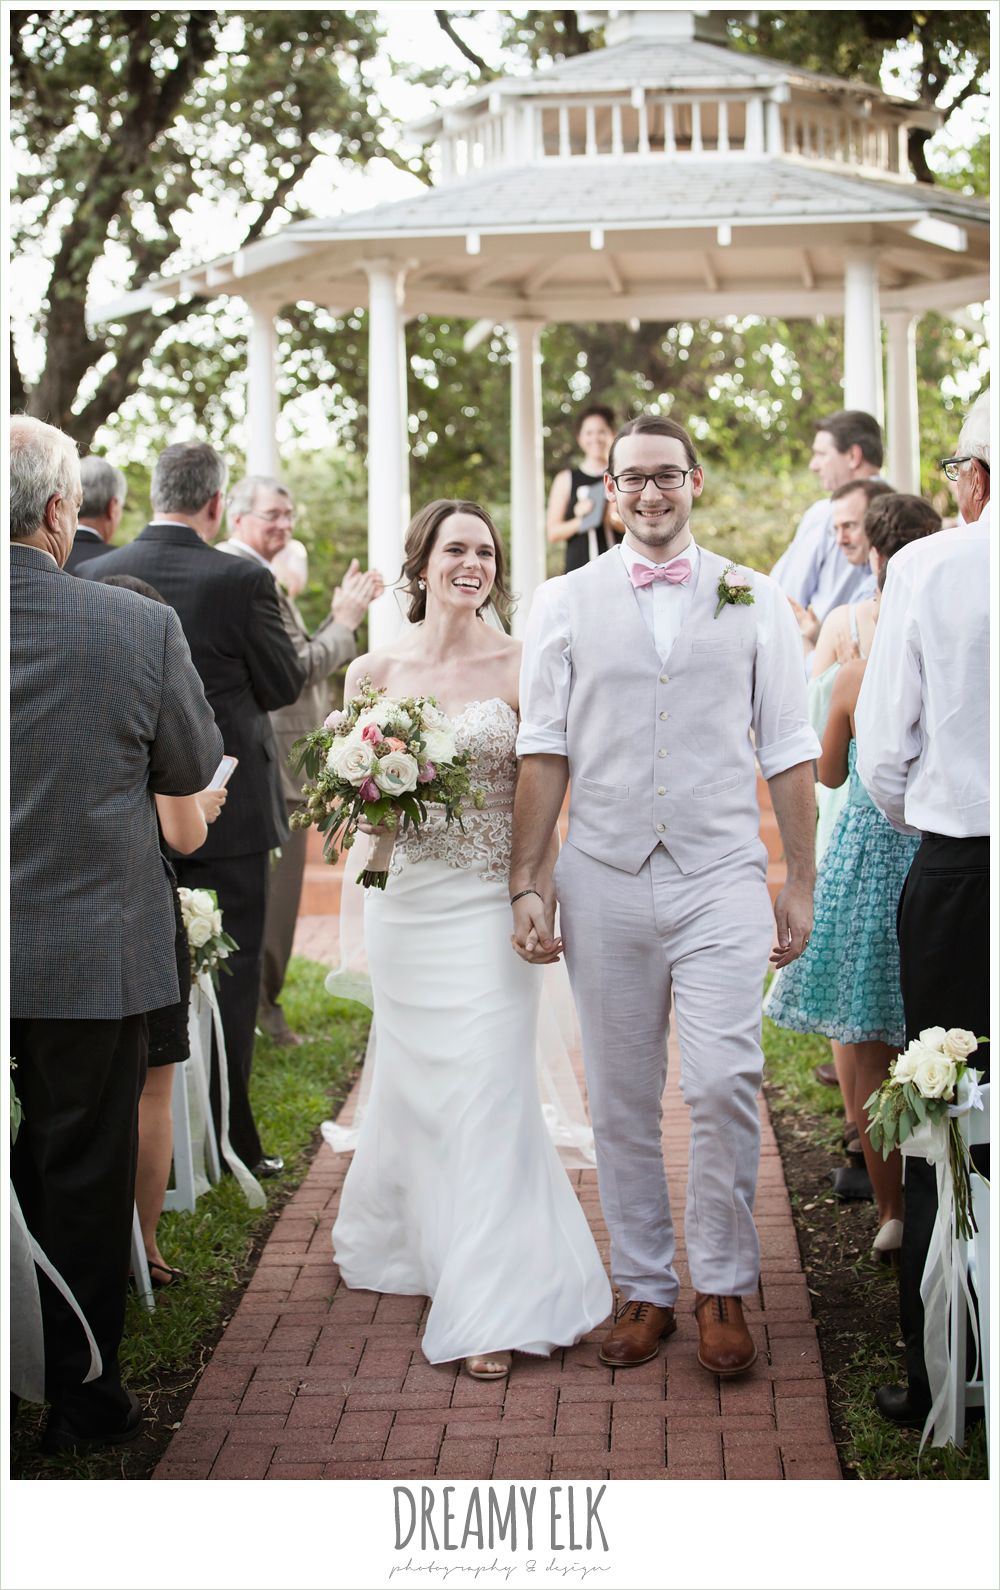 bride and groom walking down the aisle, outdoor summer wedding ceremony, the winfield inn, photo {dreamy elk photography and design}